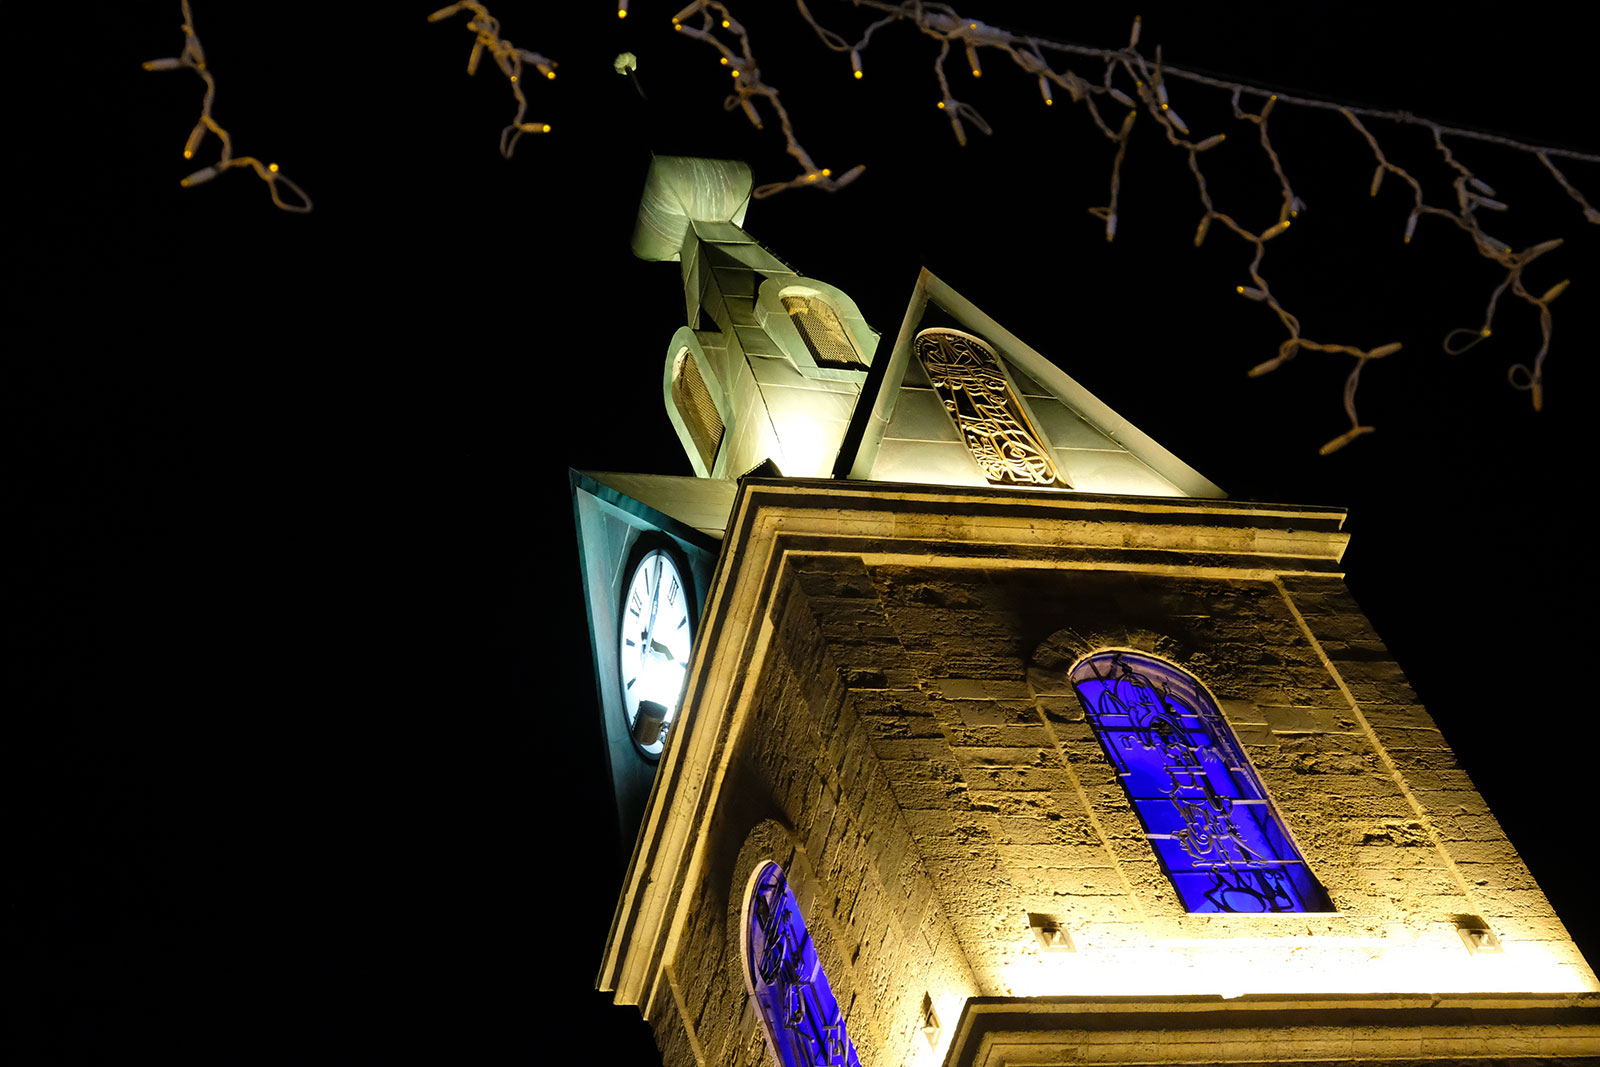 Visit the Jaffa clocktower